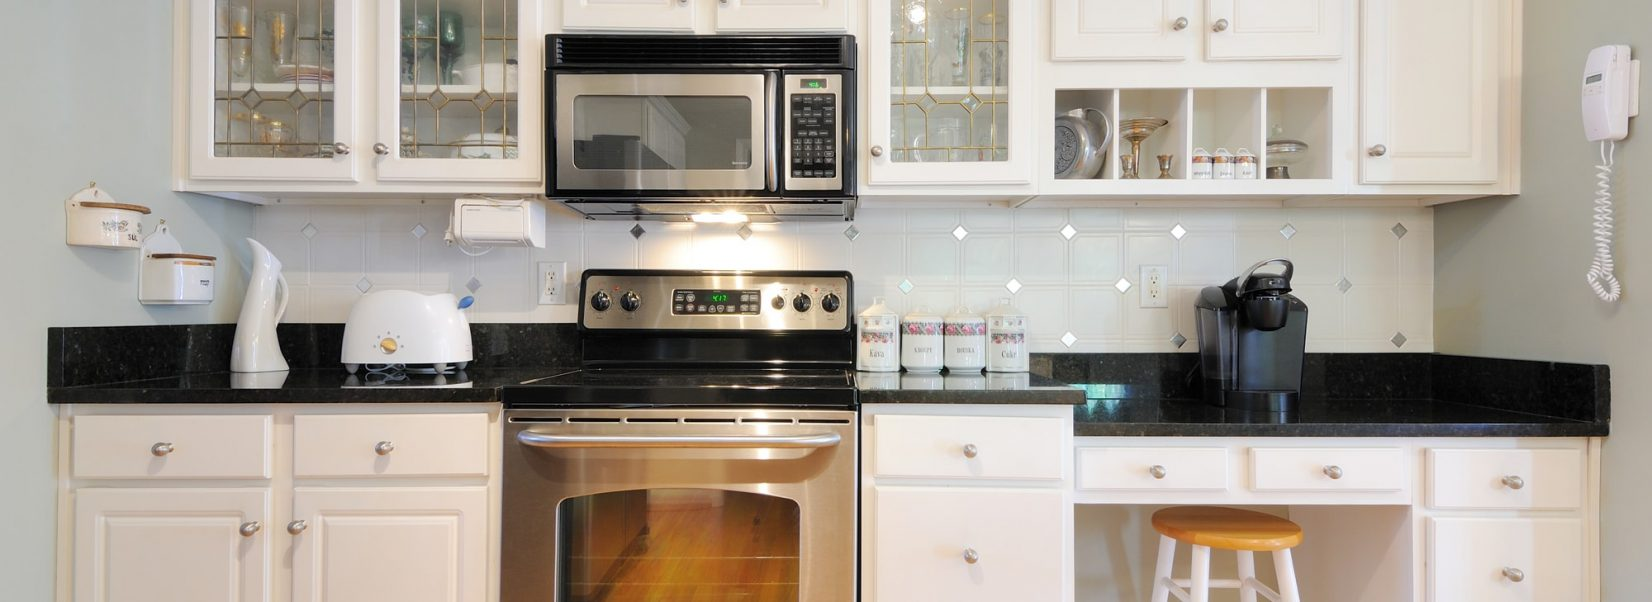 Kitchen Cabinet Selection in St. Louis: Sorting Through the ...